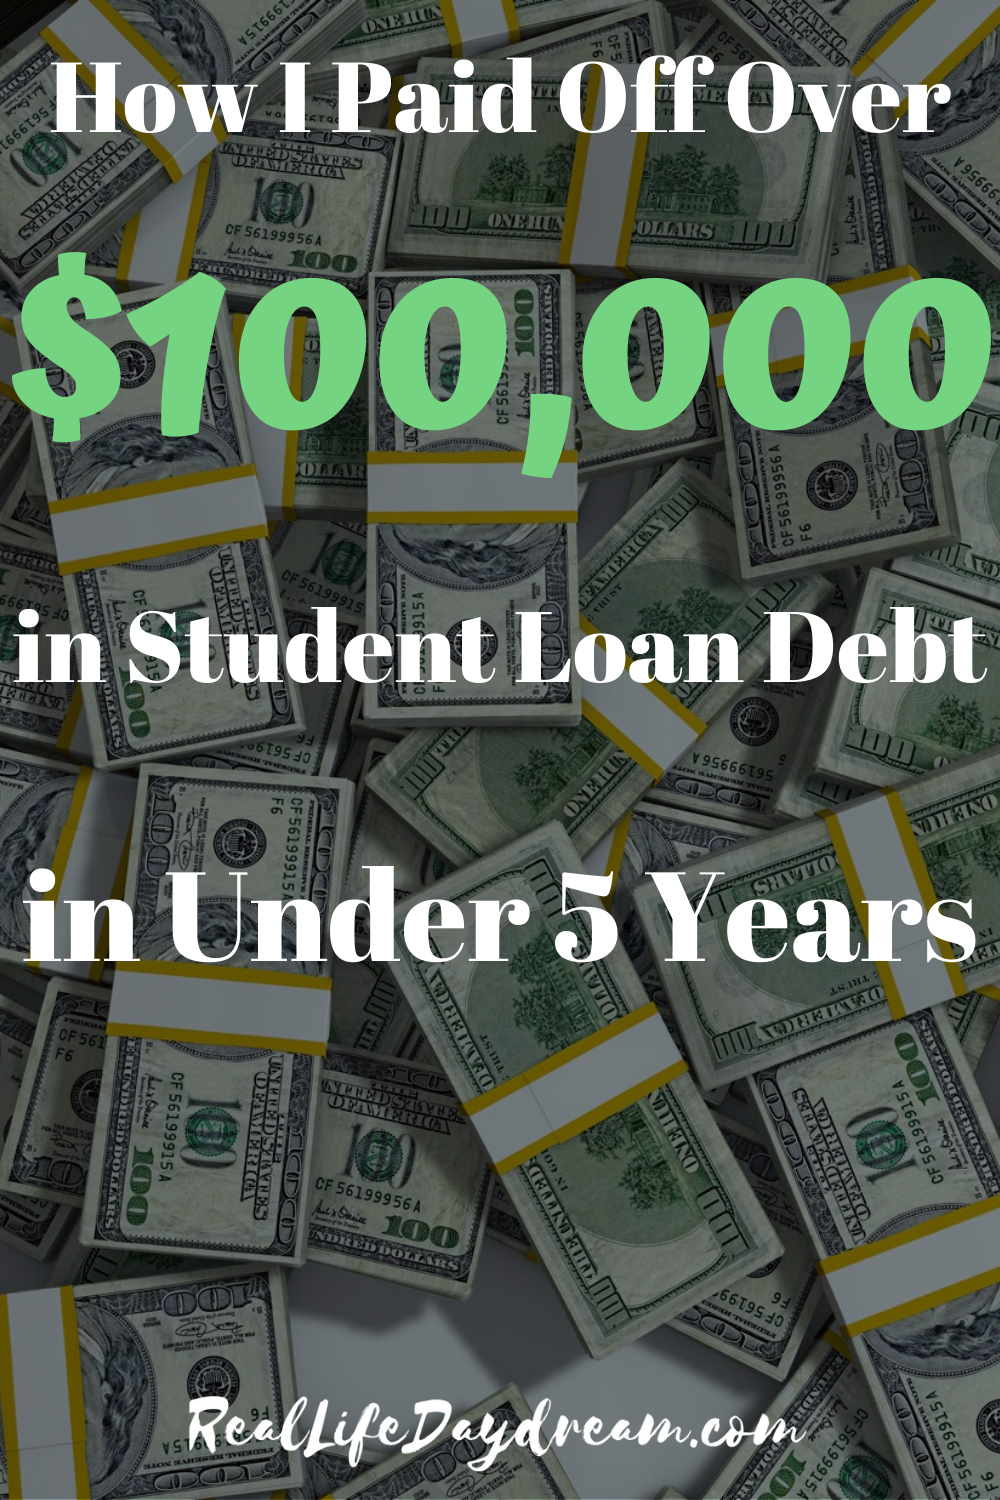 How I Paid Off Over 100 000 In Student Loan Debt In Under 5 Years In 2020 Student Loan Debt Student Loans Loan